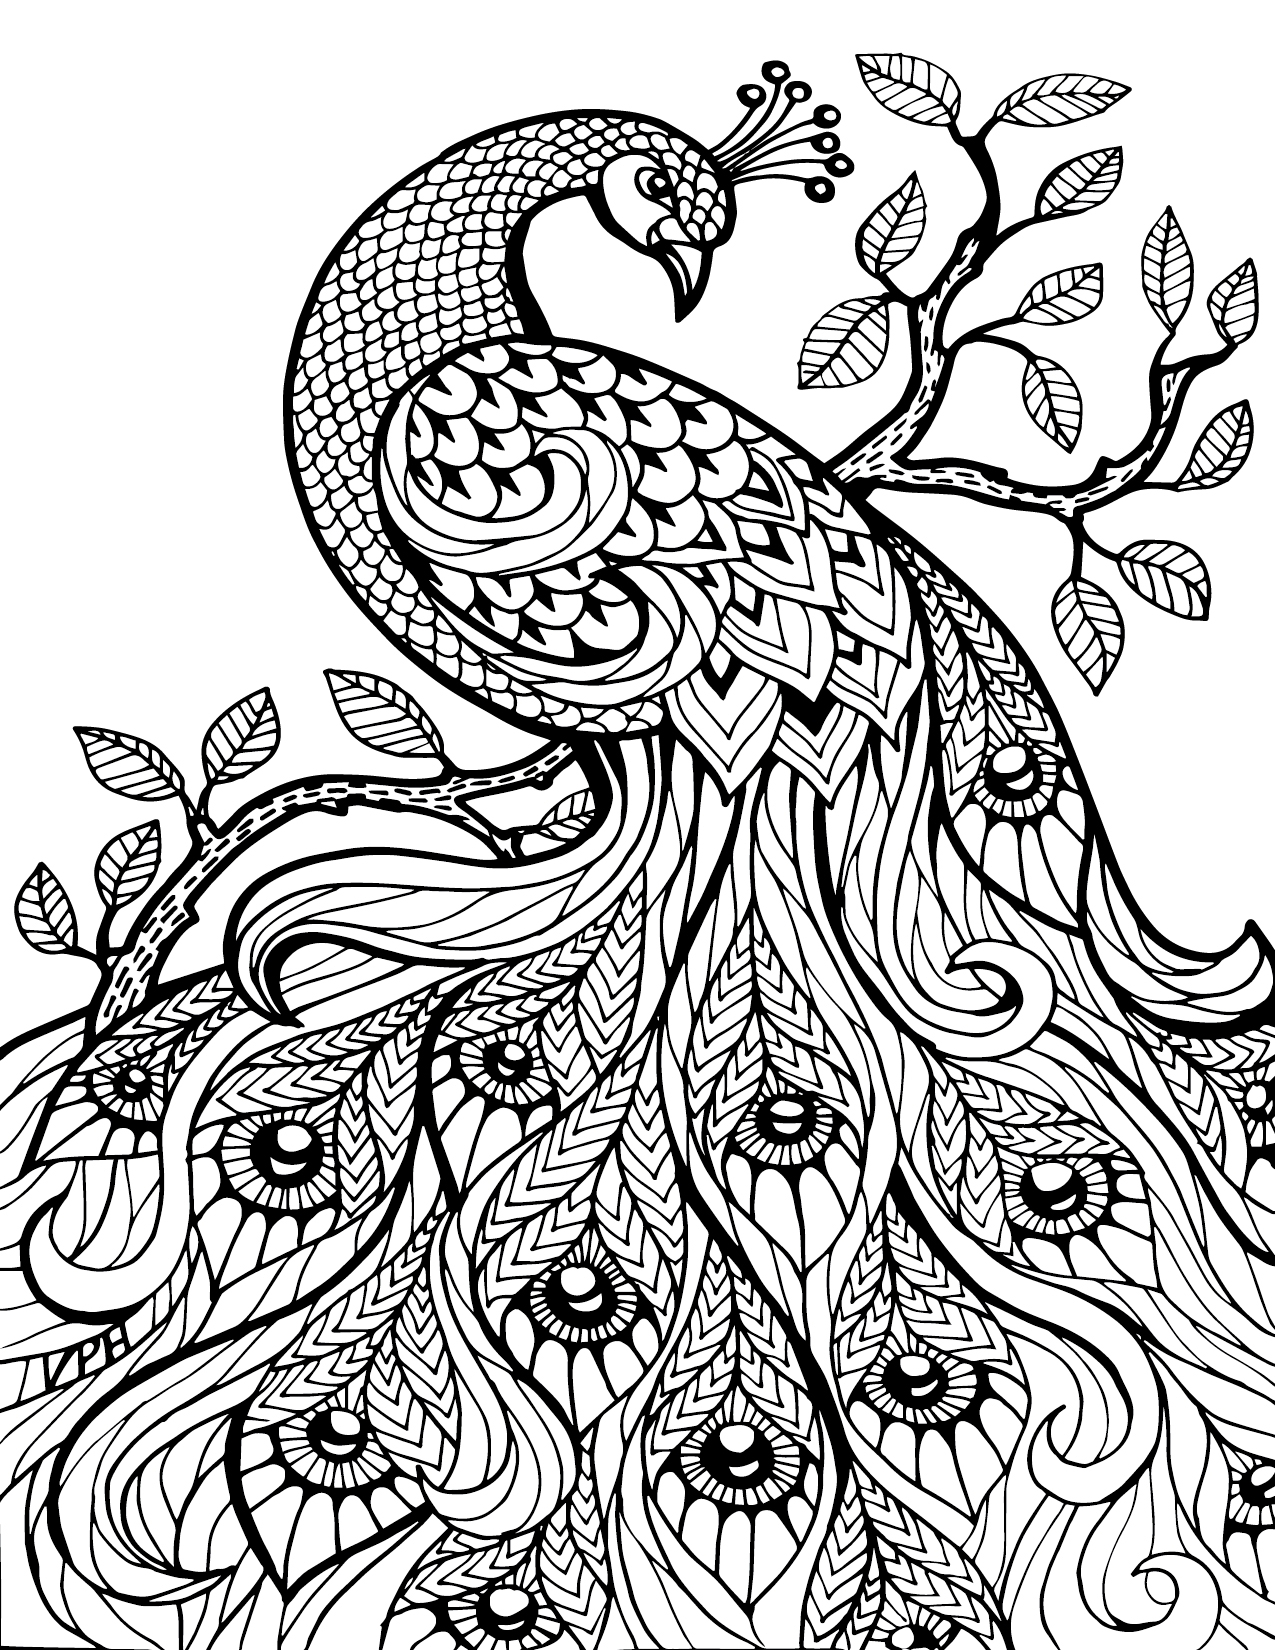 coloring pages to color online for free for adults - coloring pages